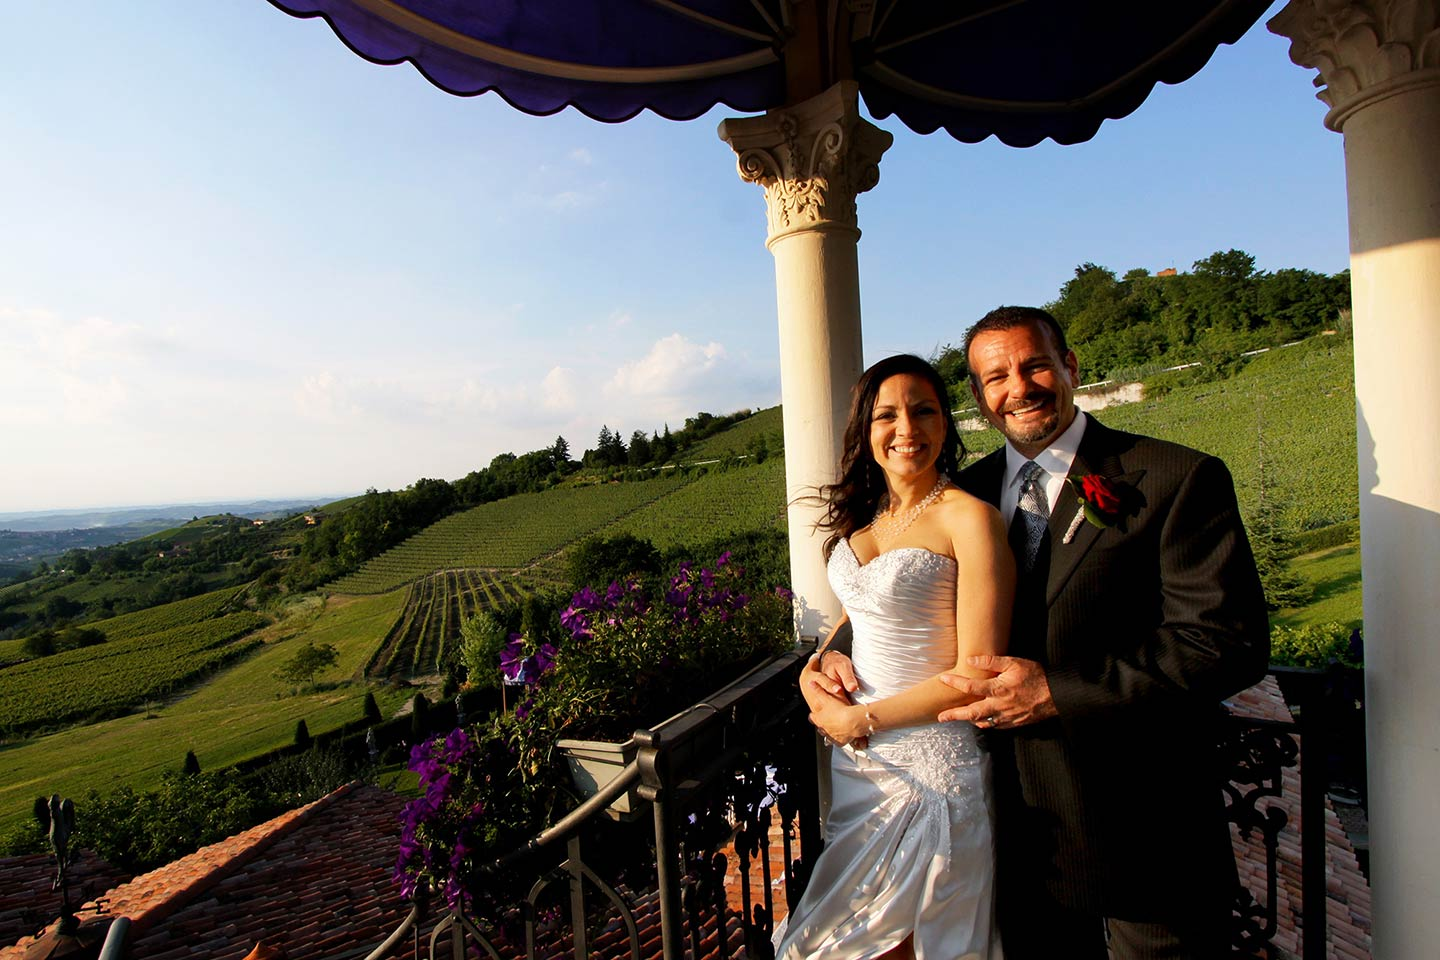 countryside wedding in Piemonte